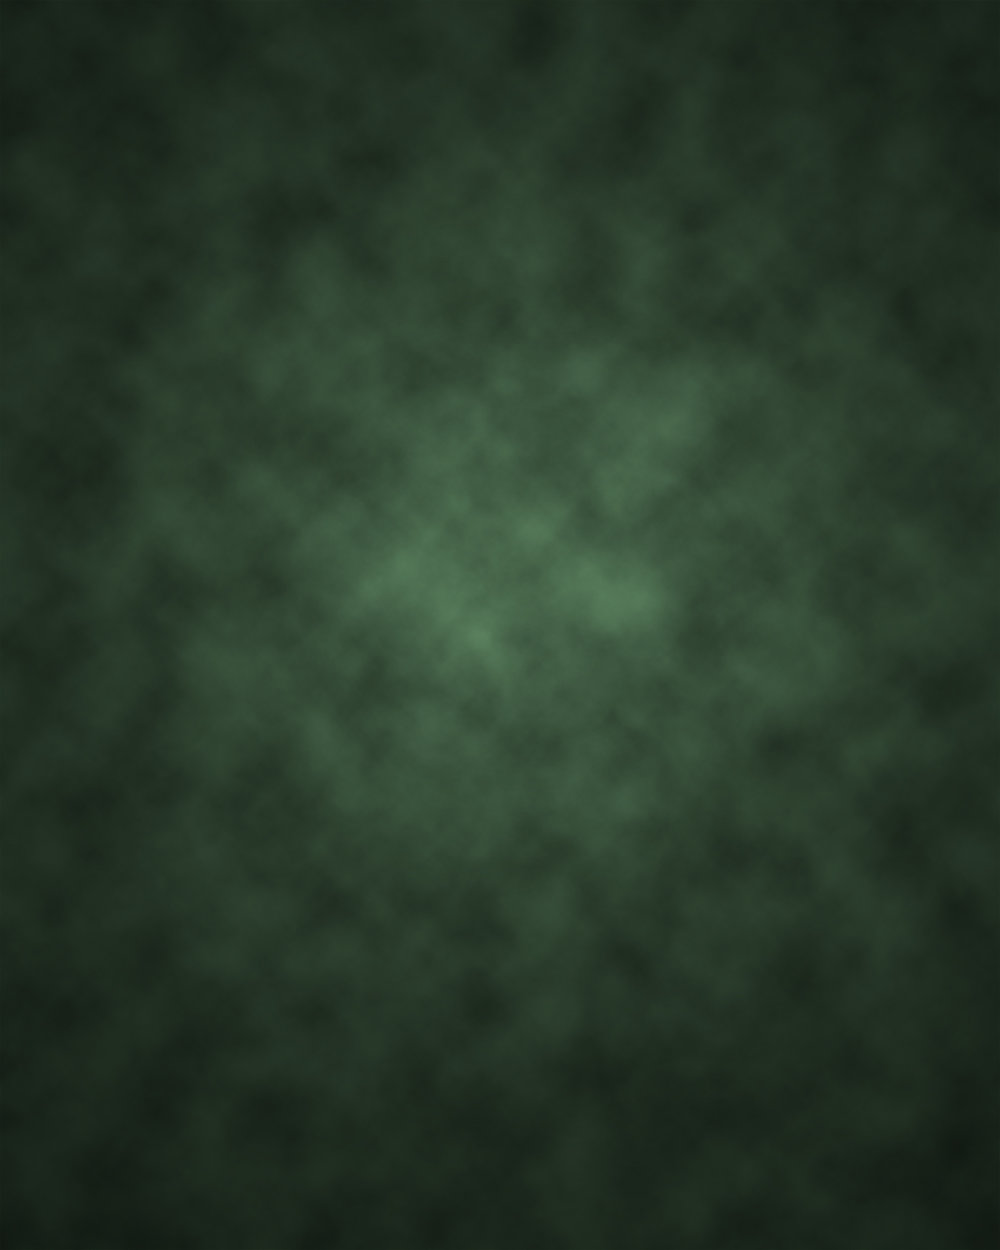 Background Option #6 - Green